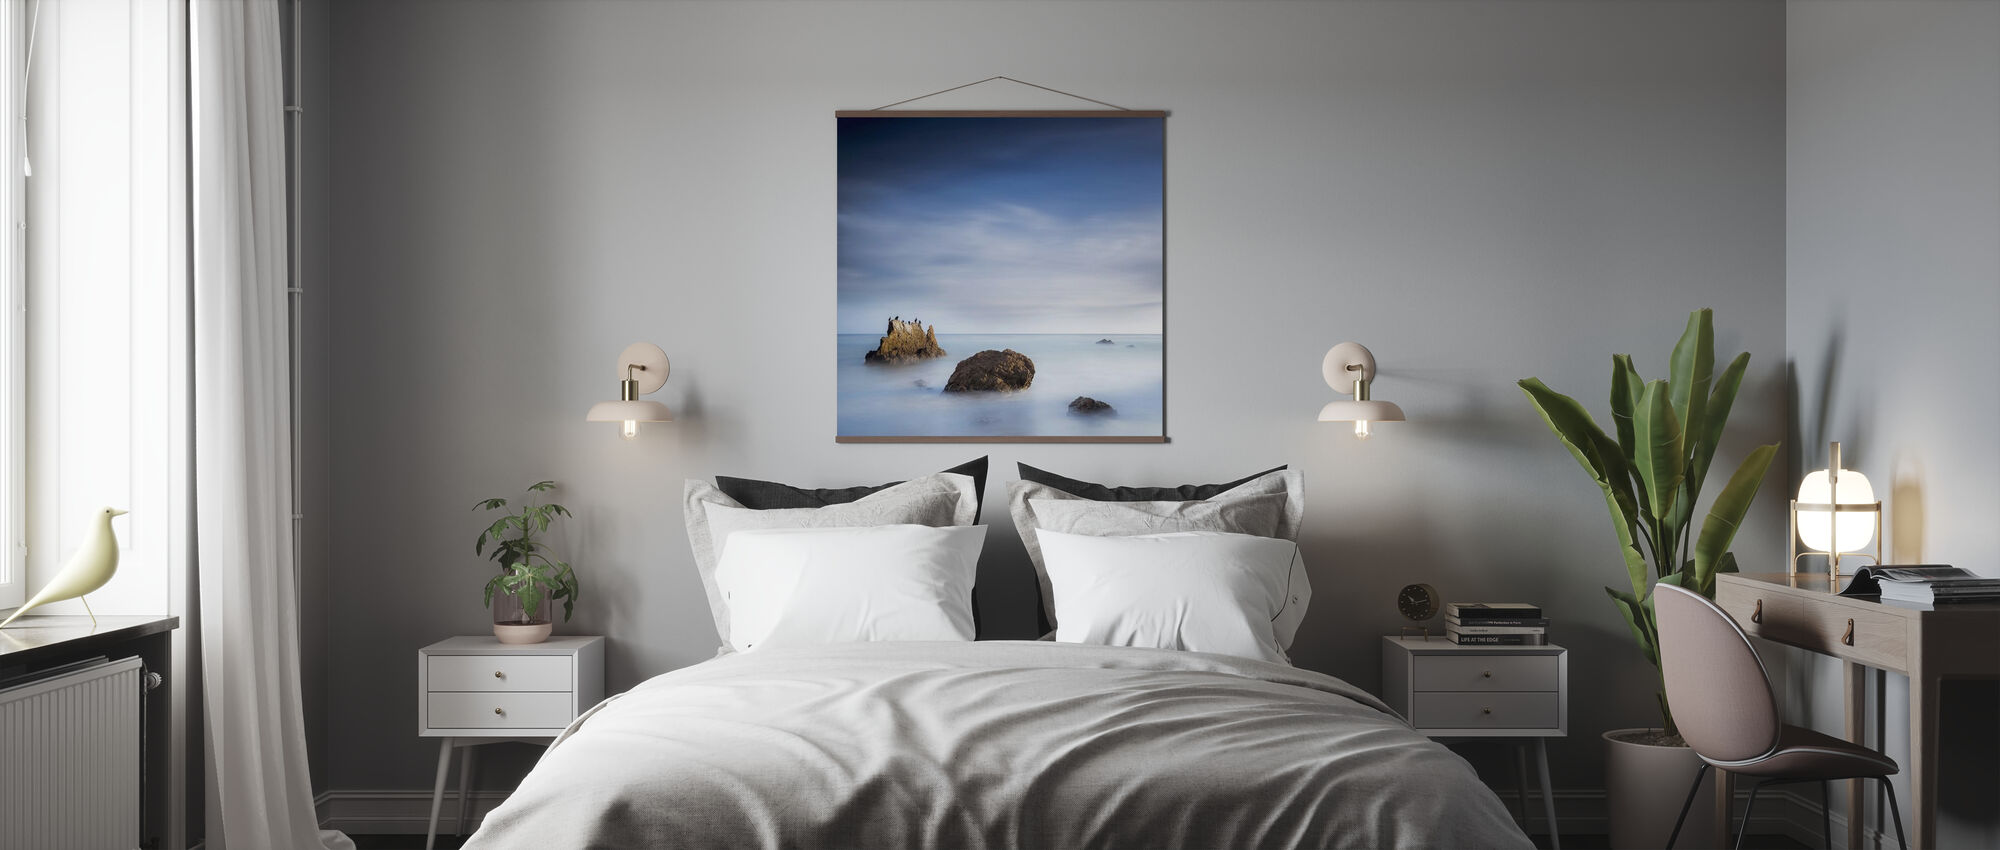 Misty Sea - Poster - Bedroom